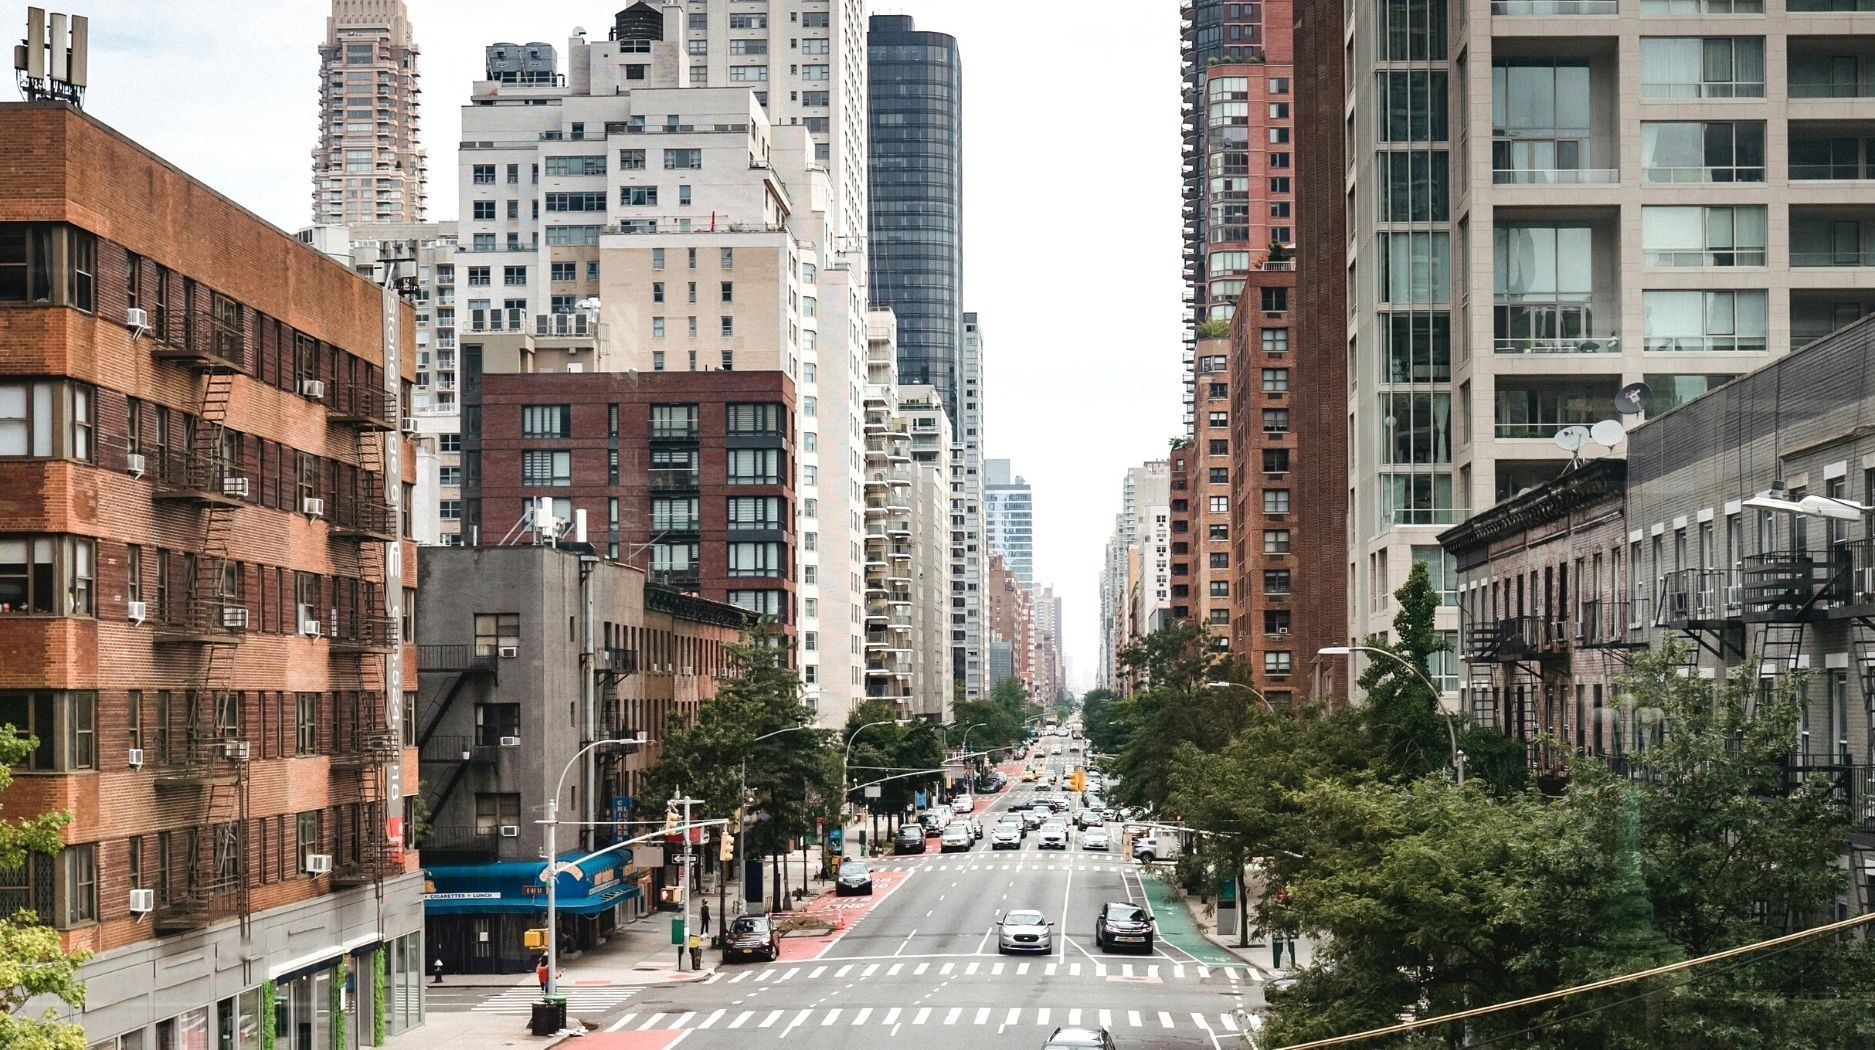 Photo of a street in New York City surrounded by high rise buildings and apartments.